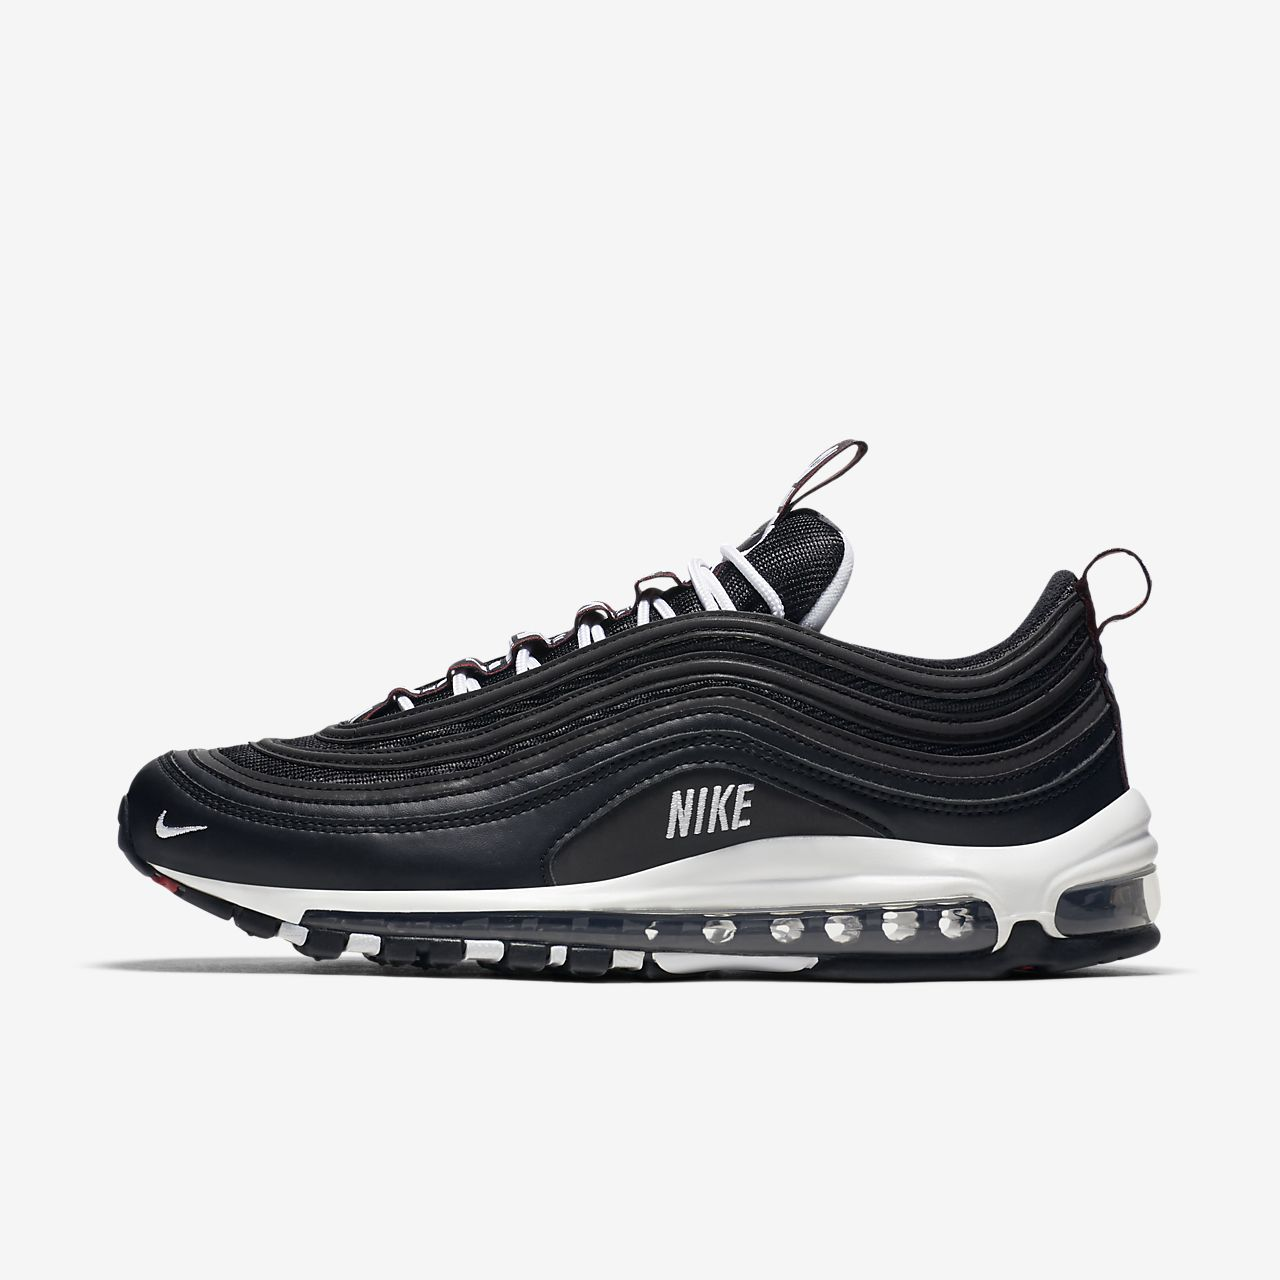 low priced 5e5de d070b Men s Shoe. Nike Air Max 97 Premium